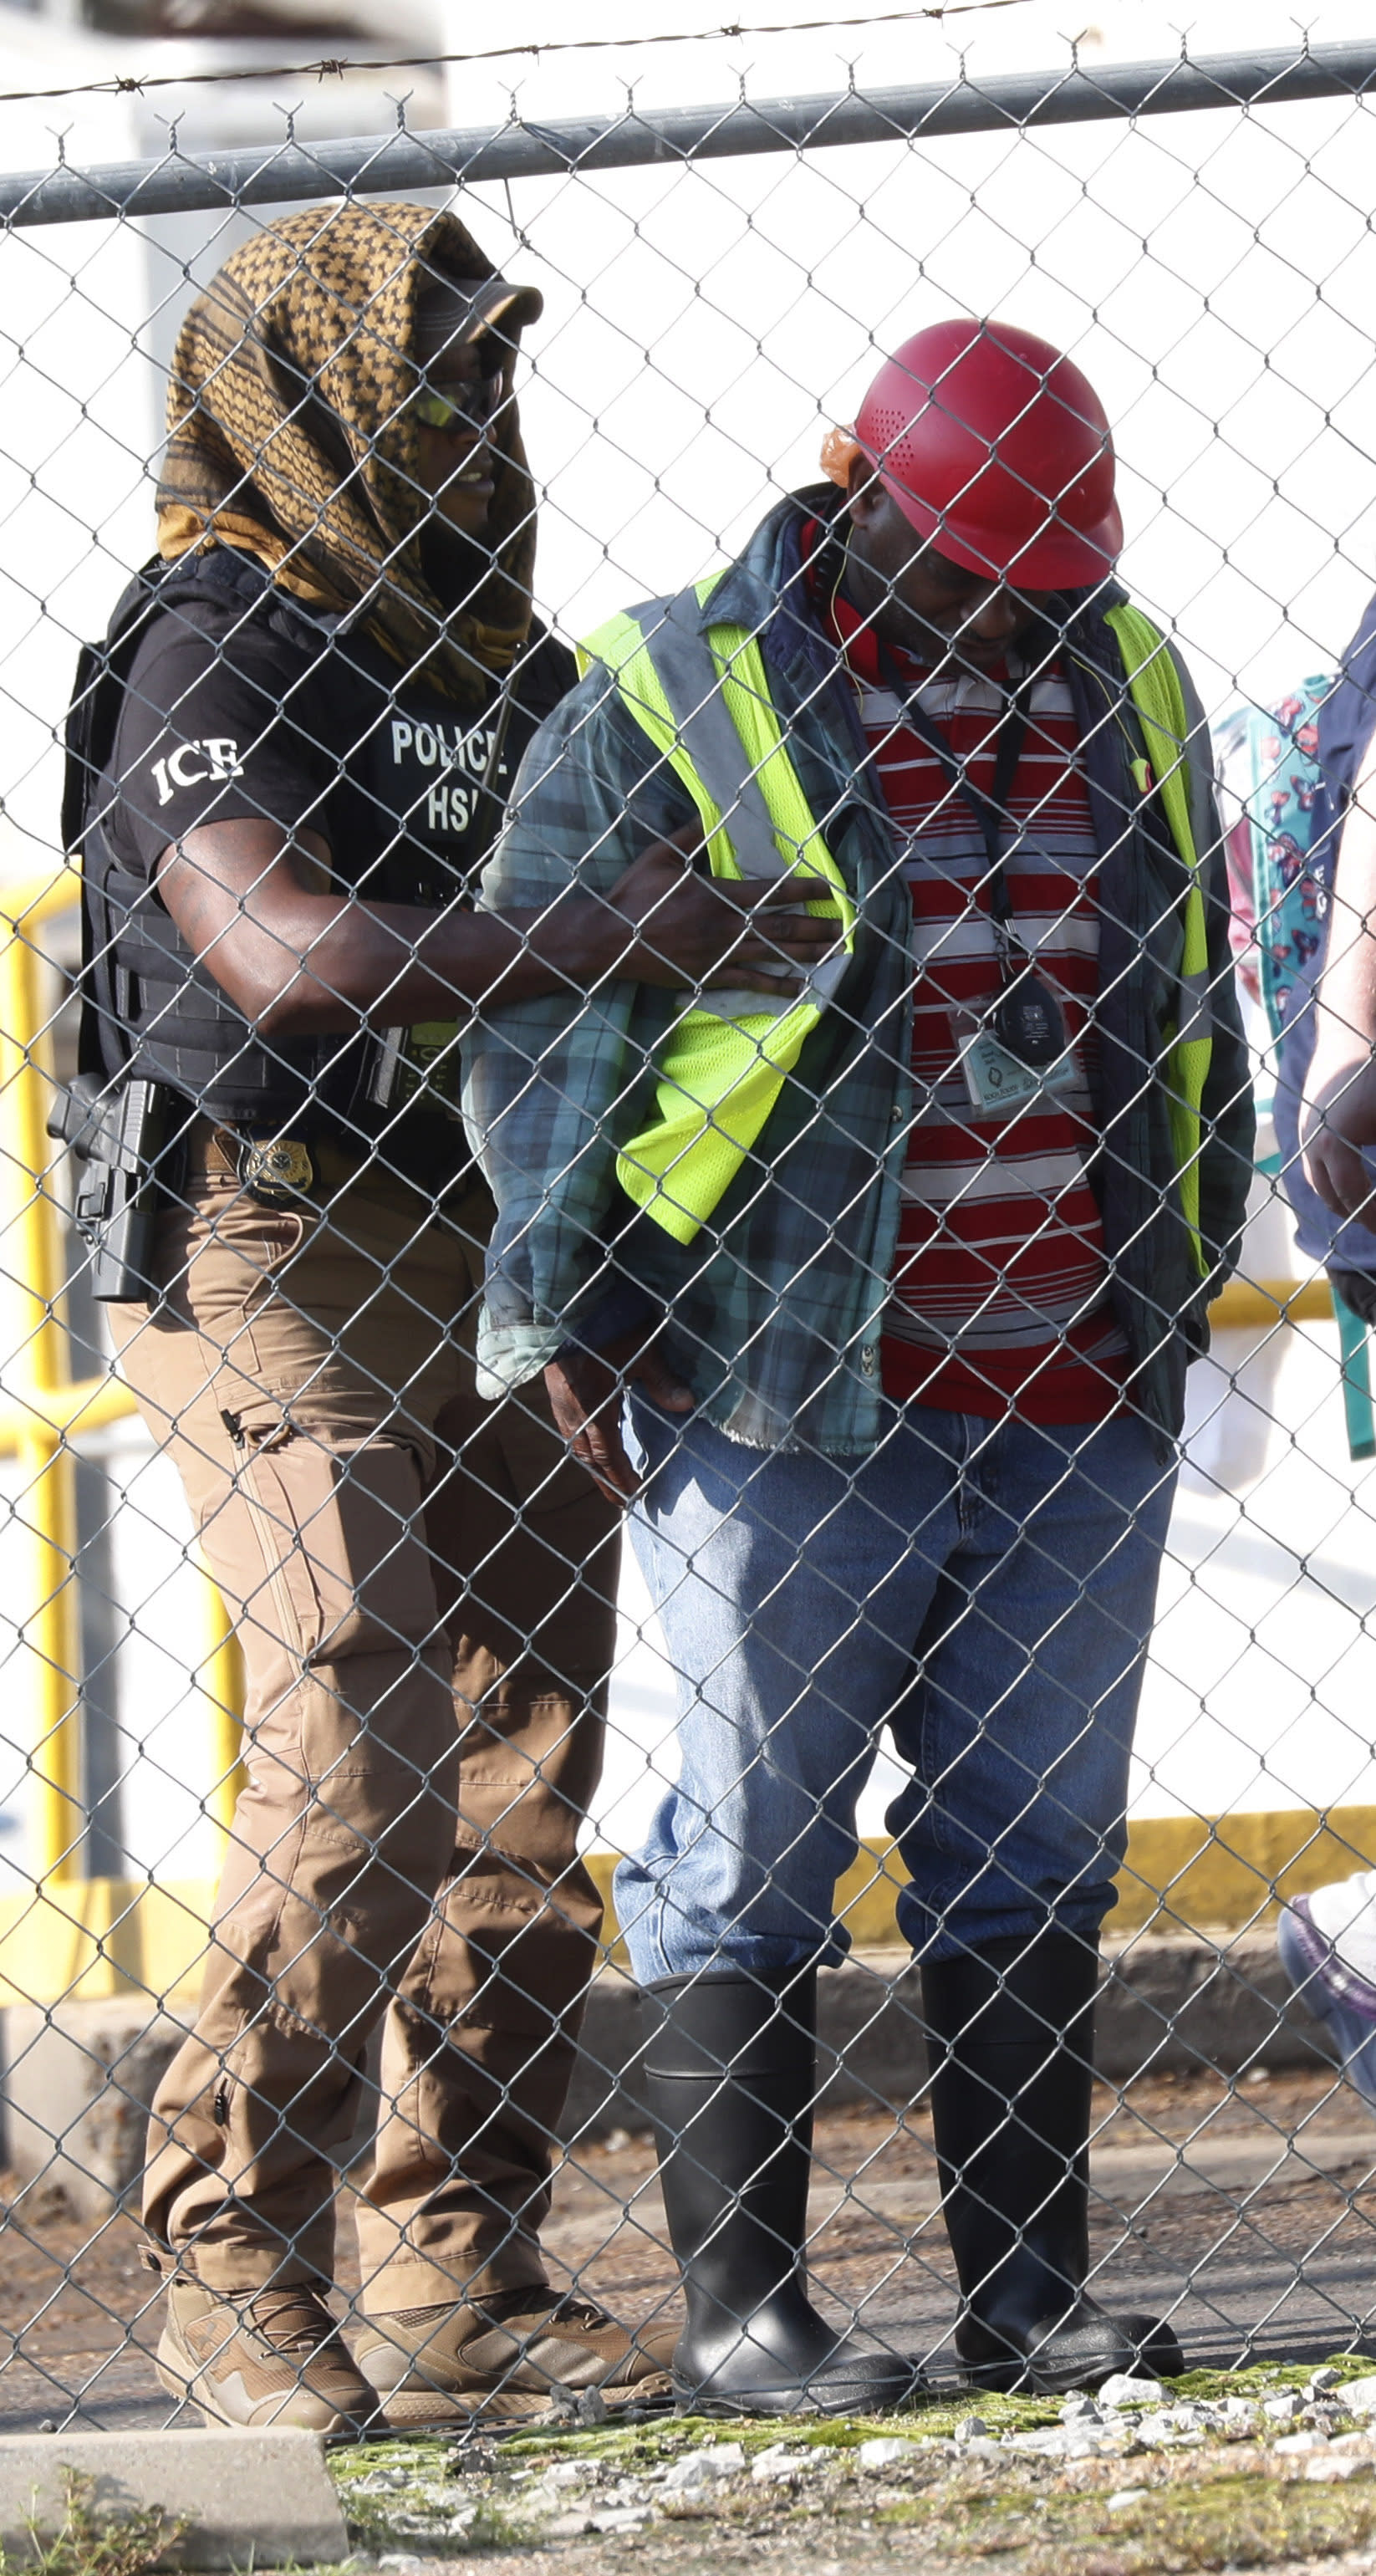 A federal agent searches a man as U.S. immigration officials raid the Koch Foods Inc., plant in Morton, Miss., Wednesday, Aug. 7, 2019. U.S. immigration officials raided several Mississippi food processing plants on Wednesday and signaled that the early-morning strikes were part of a large-scale operation targeting owners as well as employees. (AP Photo/Rogelio V. Solis)